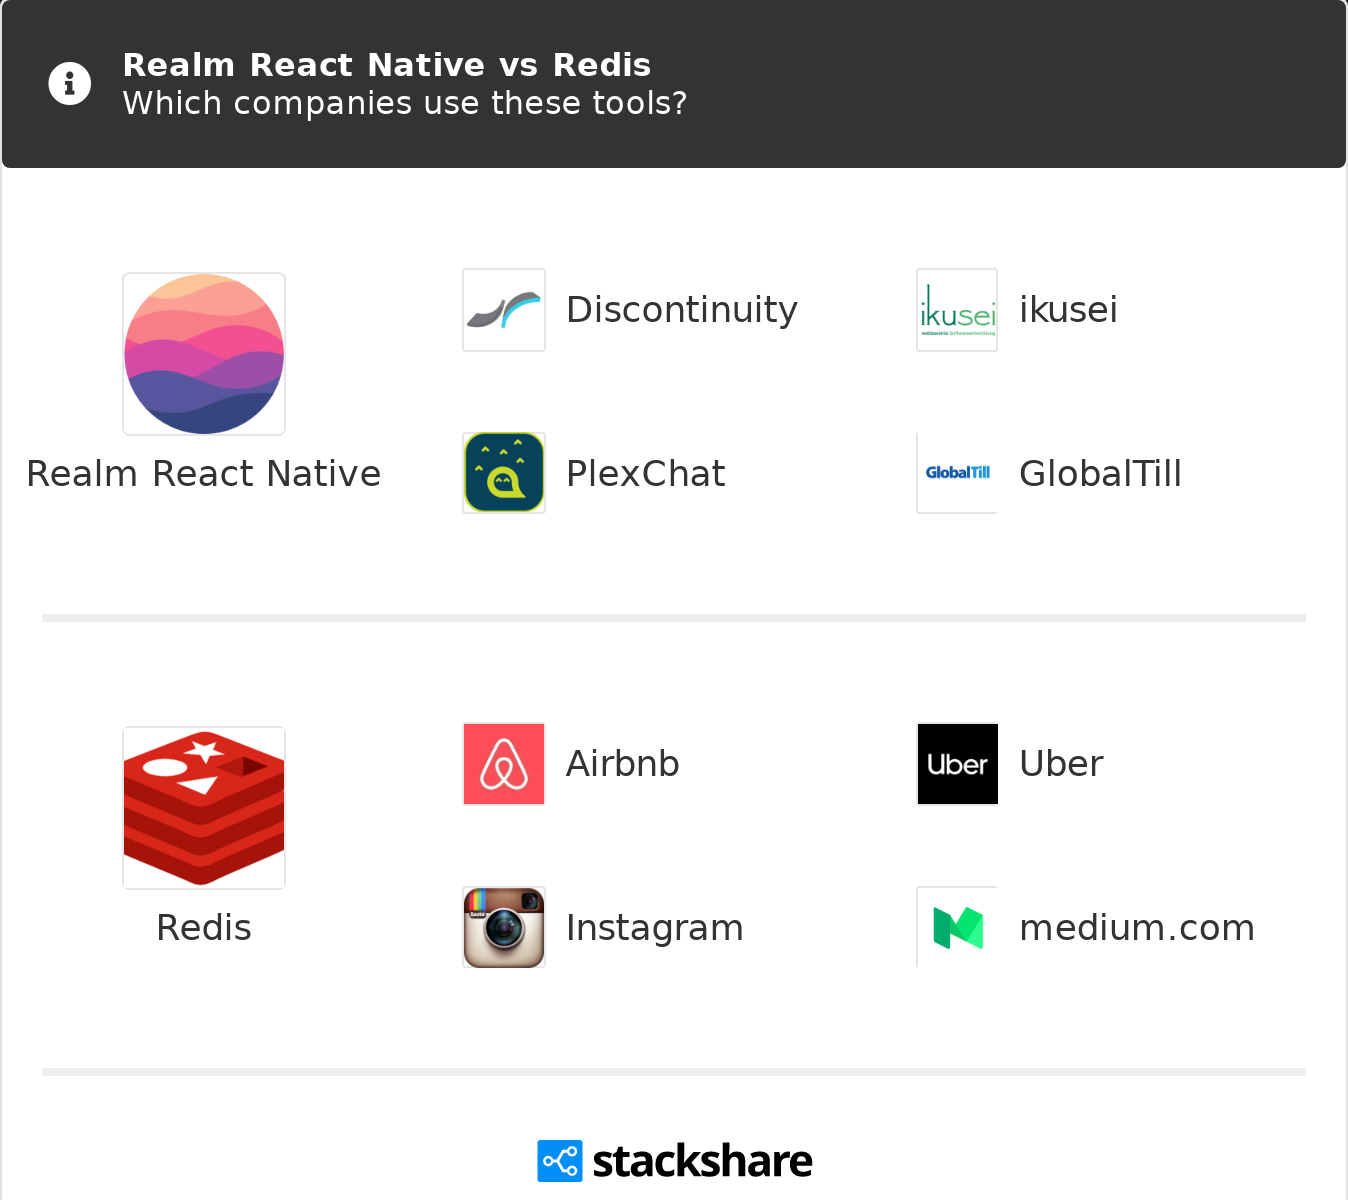 Realm React Native vs Redis | What are the differences?